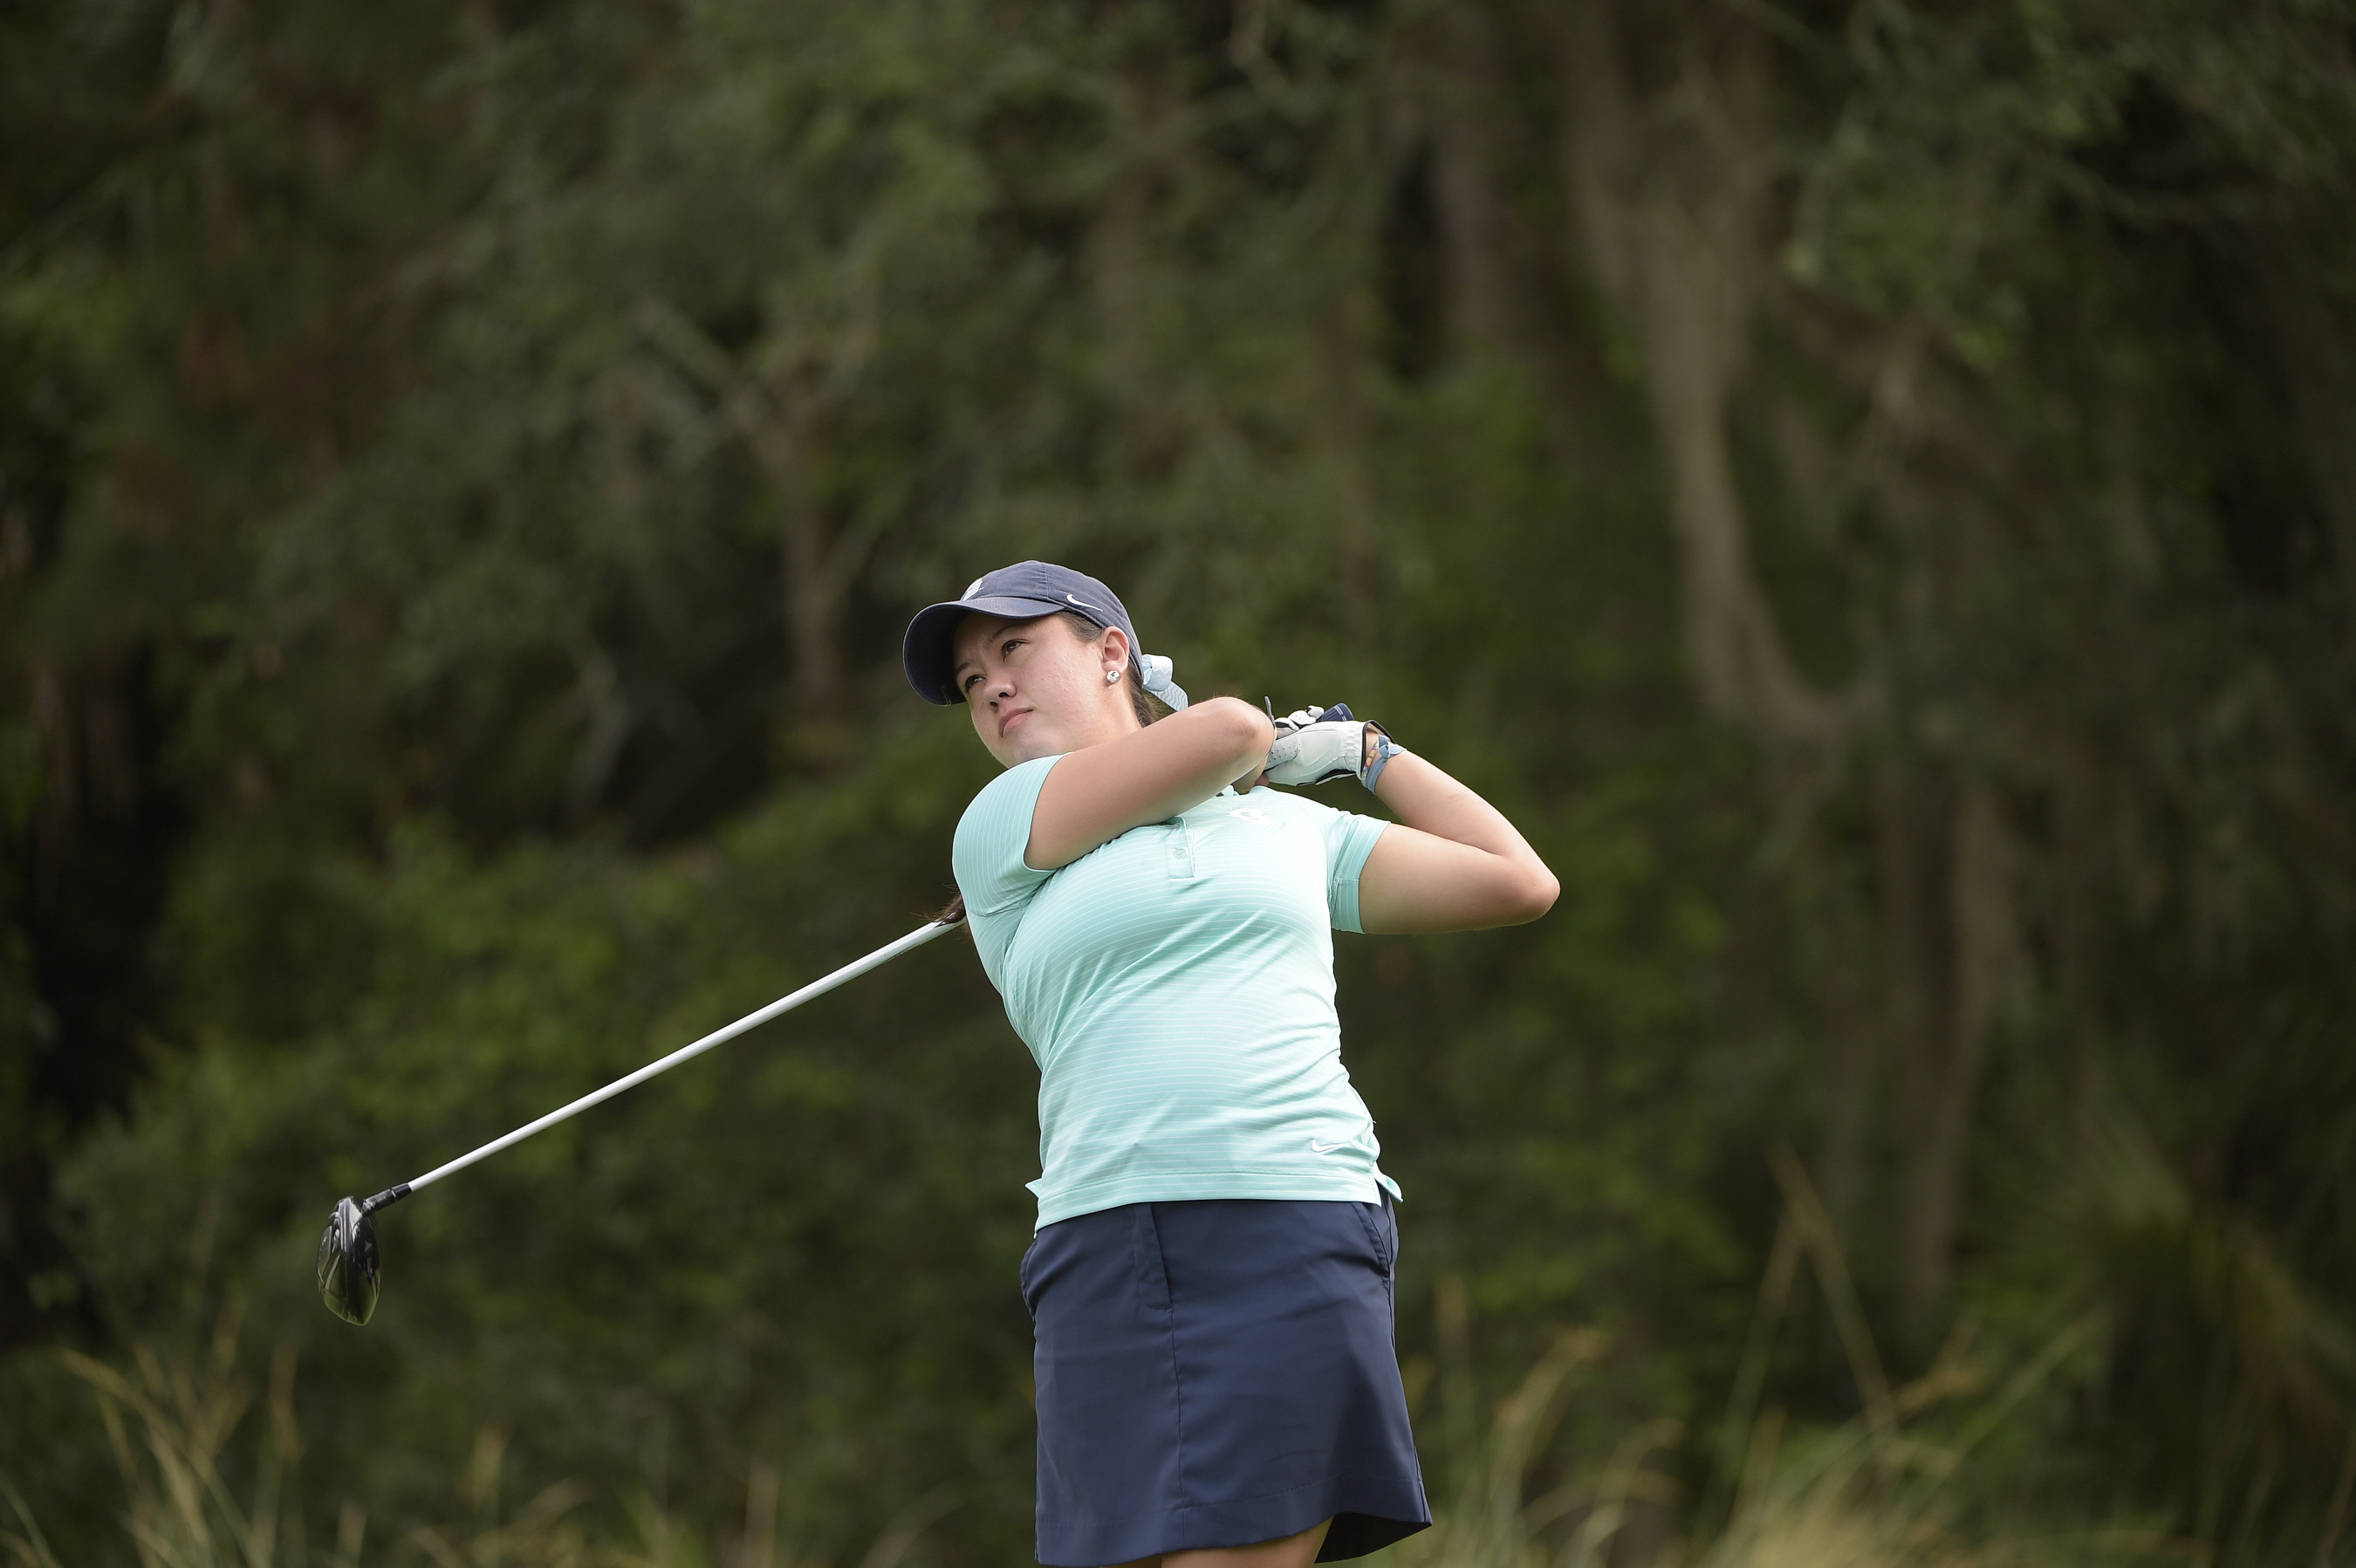 The Georgetown University women's golf team shot a 12-over par 300 in the second round and enters the final round of play at the BIG EAST Championship one stroke off the pace of Seton Hall and Xavier, who are tied for first place.